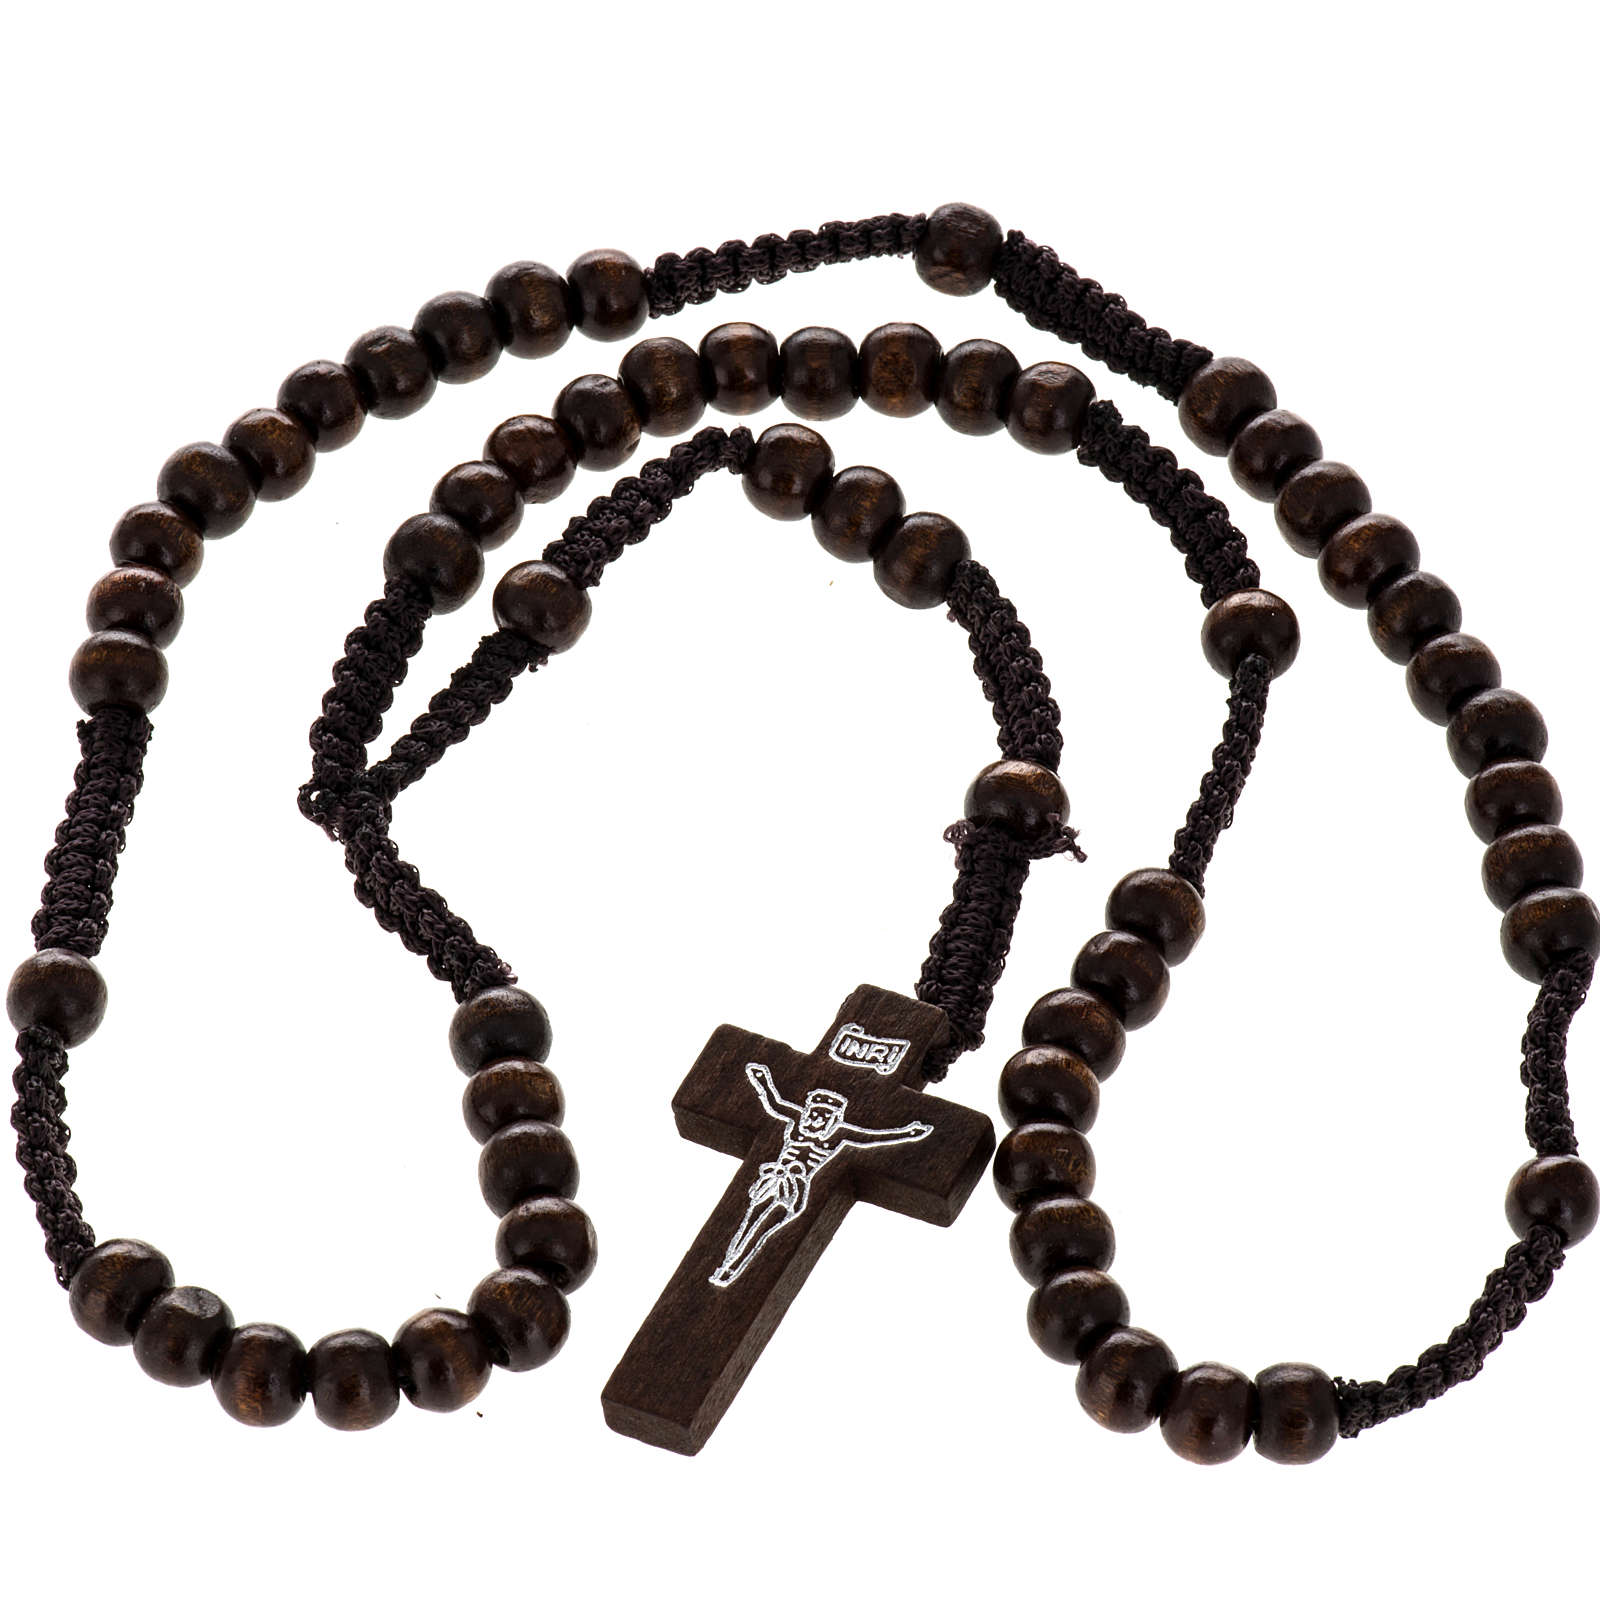 Weaved string wood rosary 4